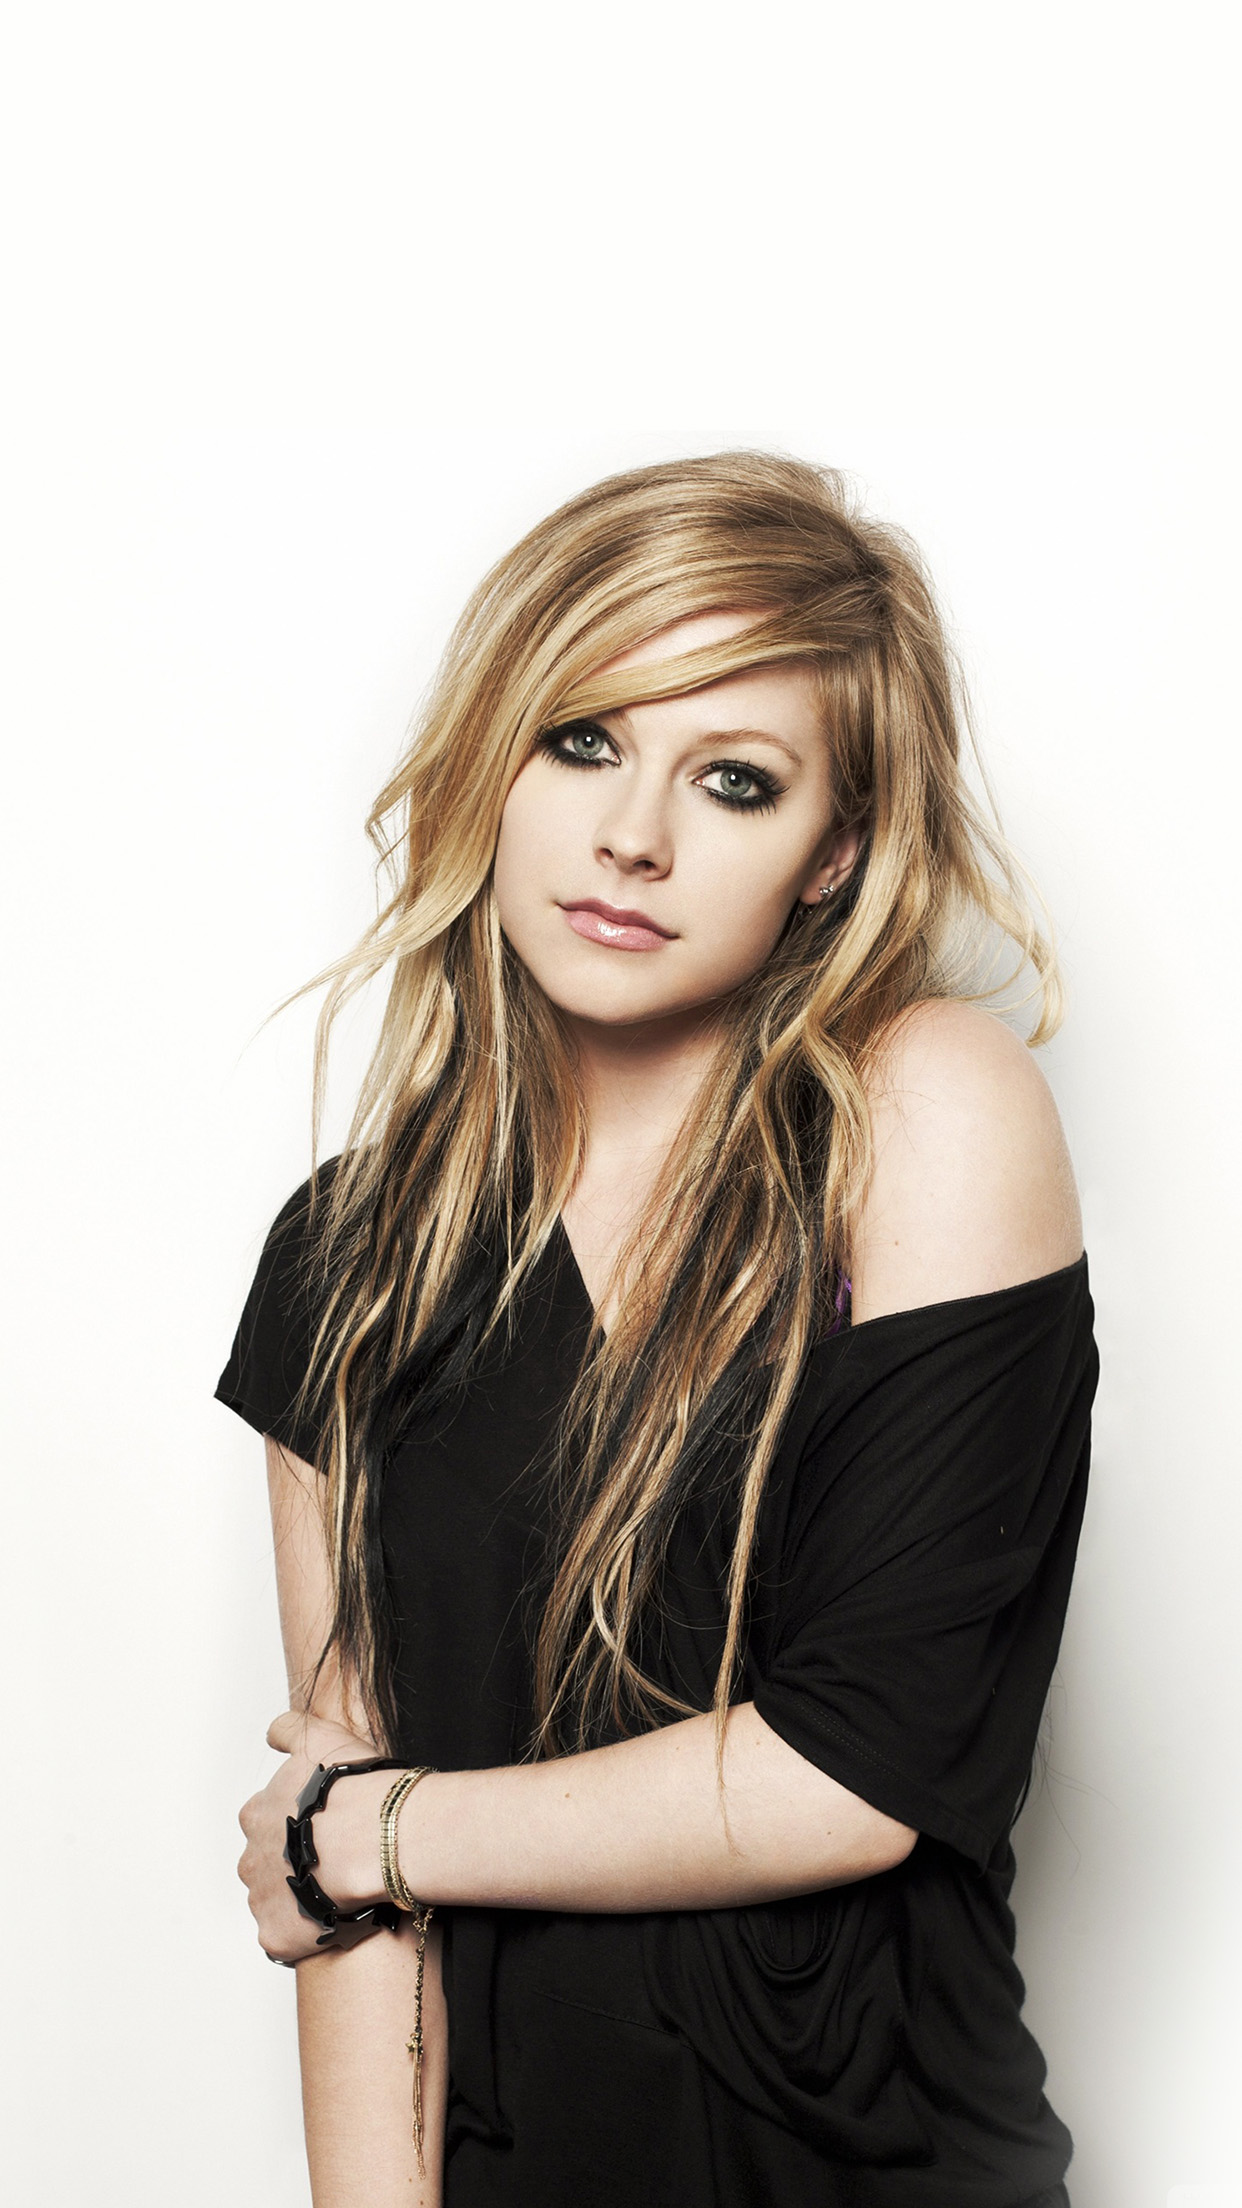 Avril Lavigne Music Star Beauty Android wallpaper